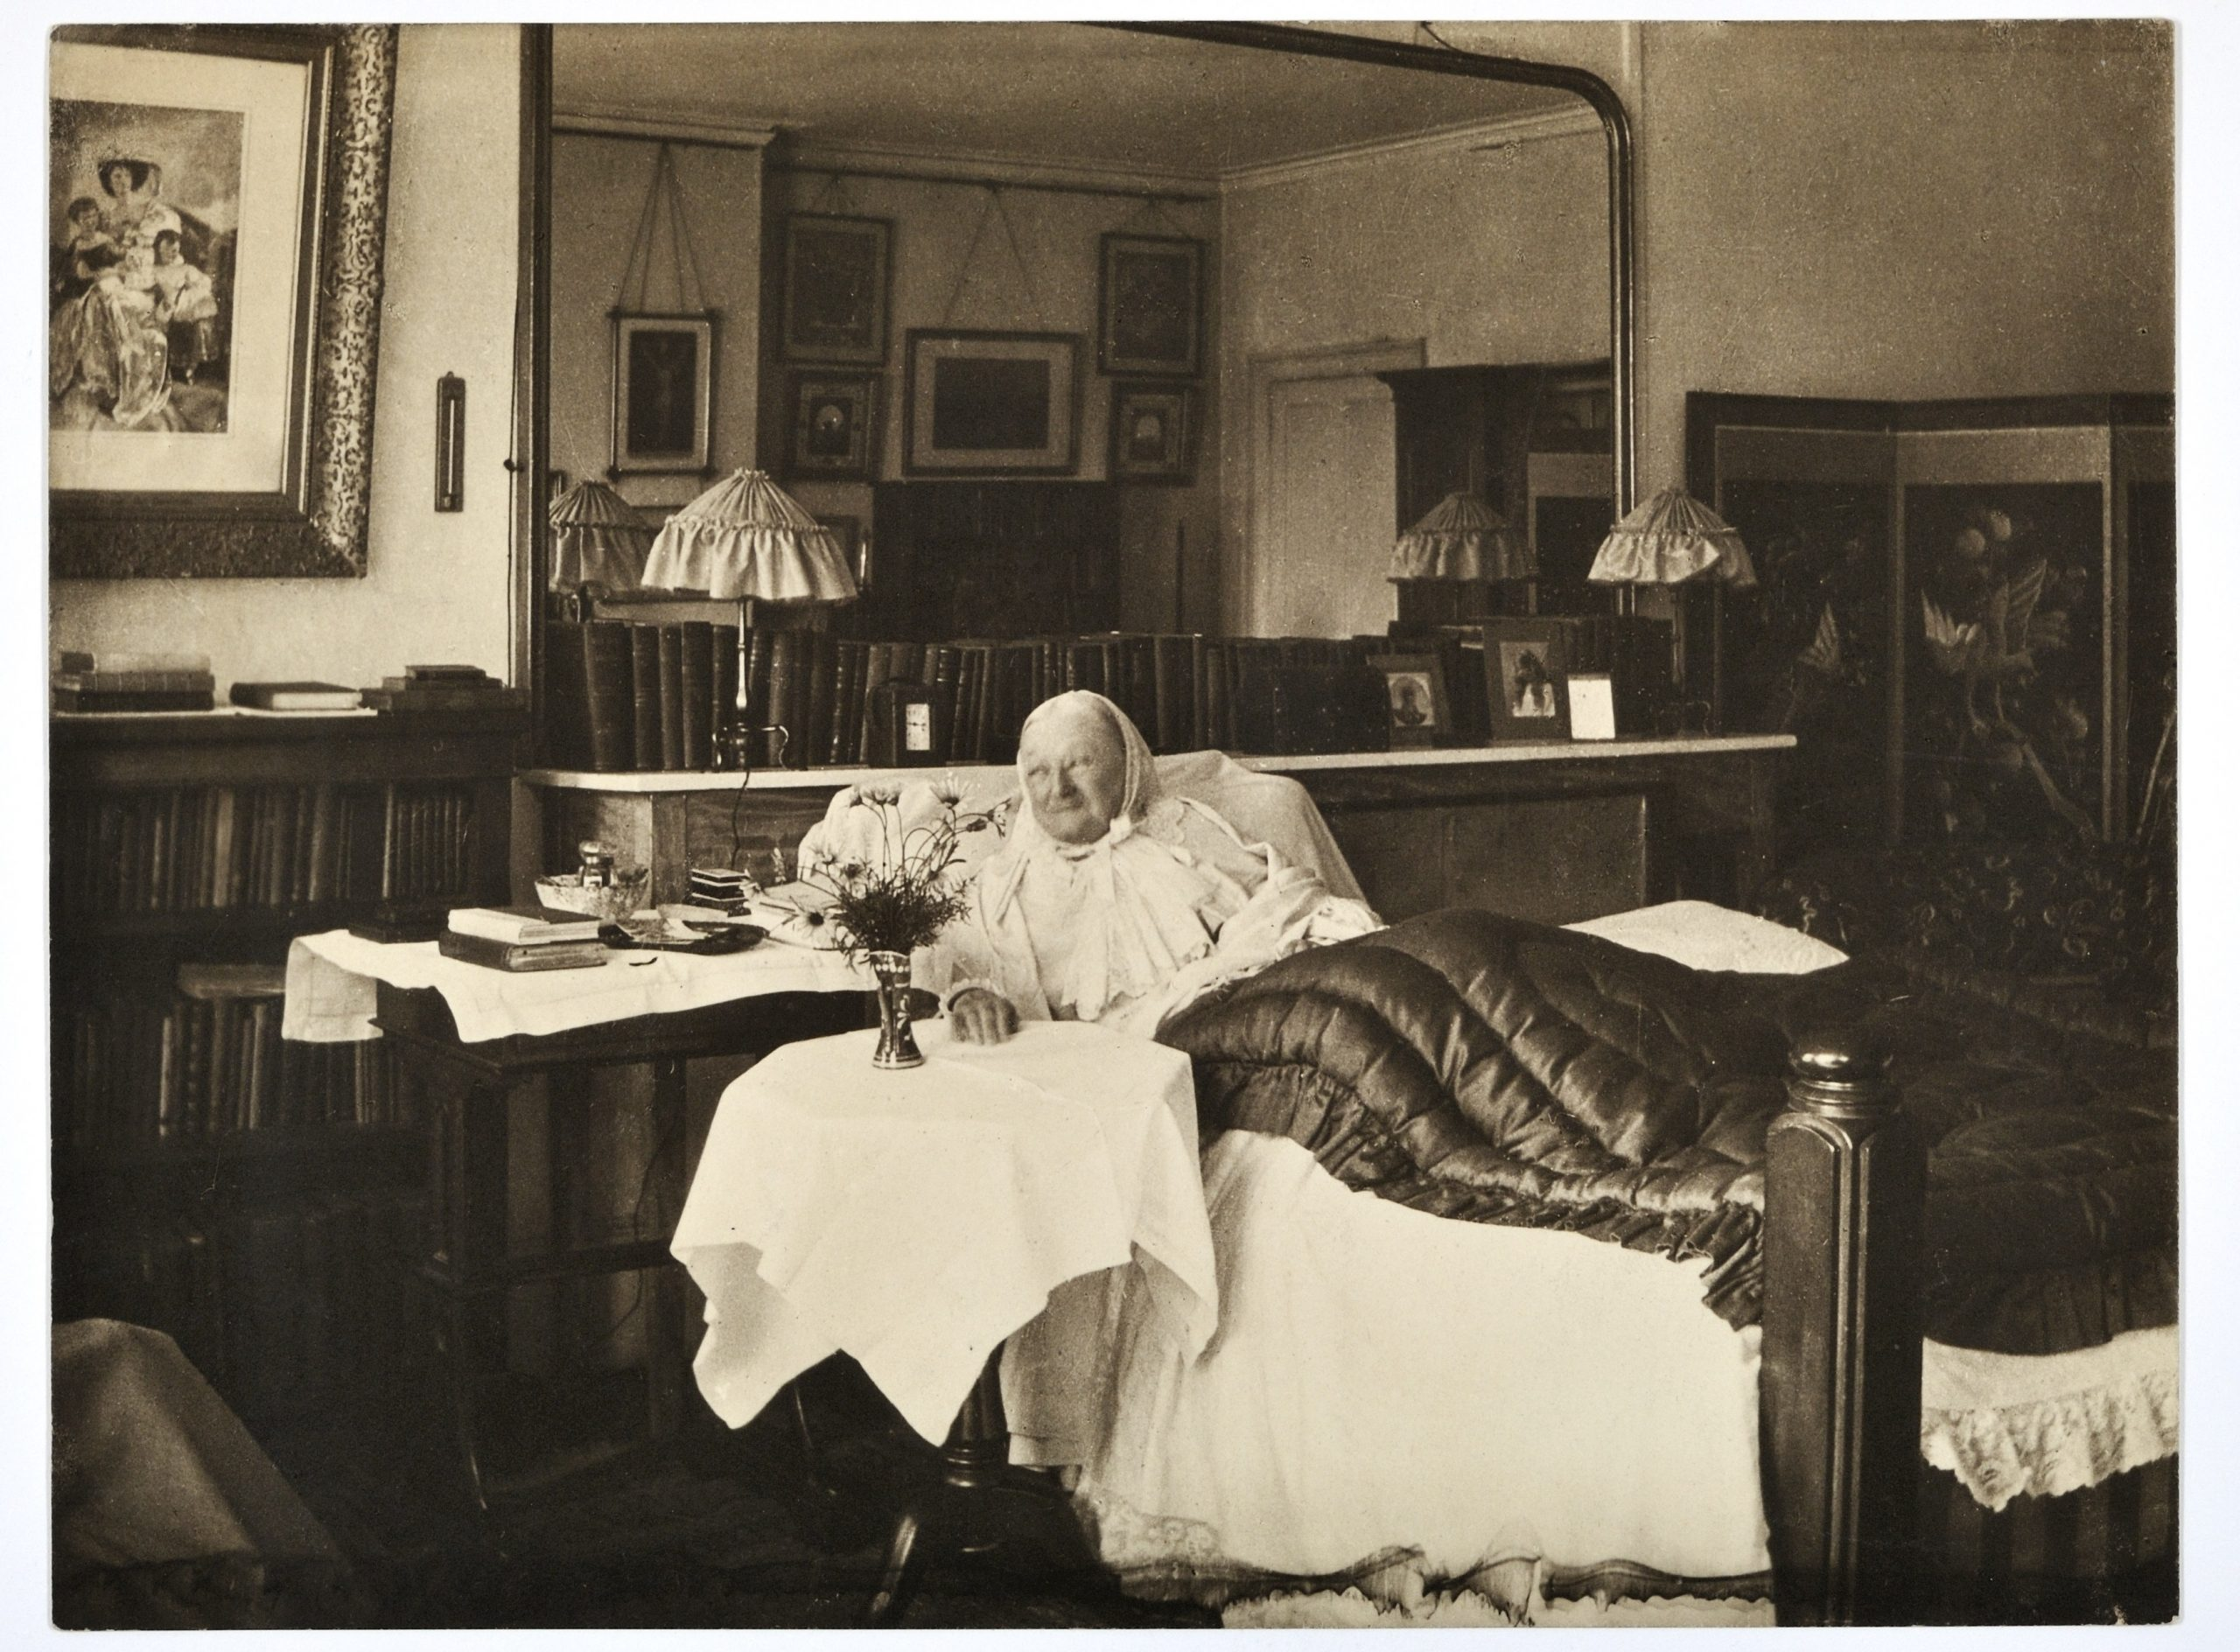 Florence Nightingale in bed at South Street in 1906, aged 86. Photographed by Elizabeth Bosanquet.